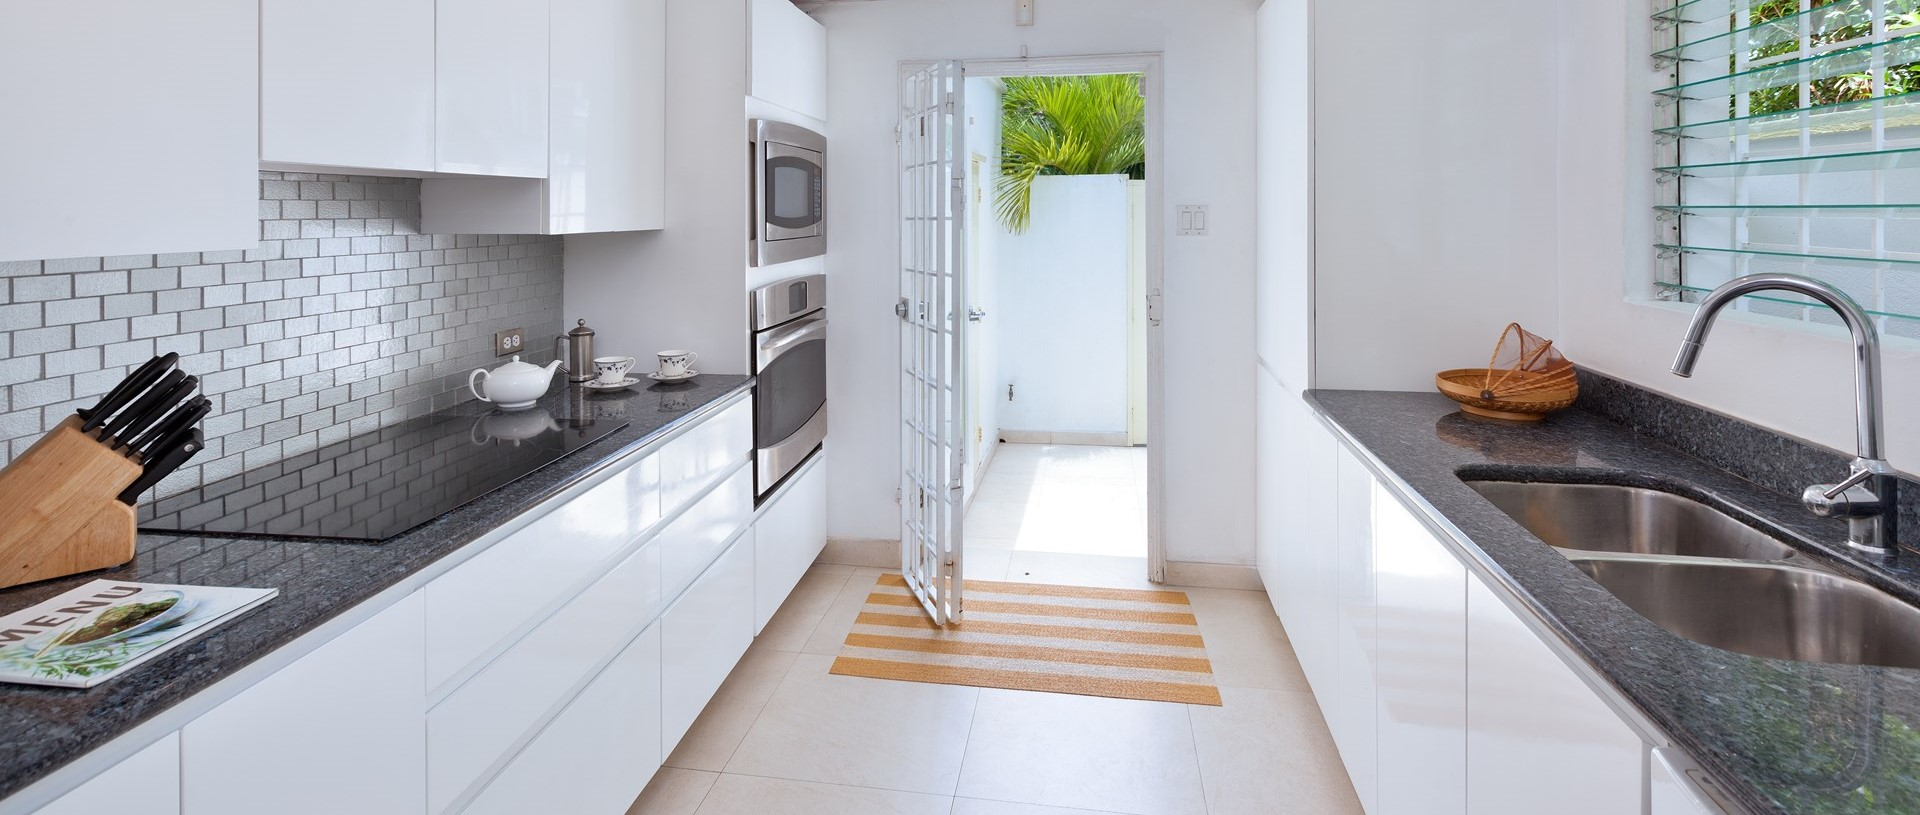 easy-reach-villa-barbados-kitchen